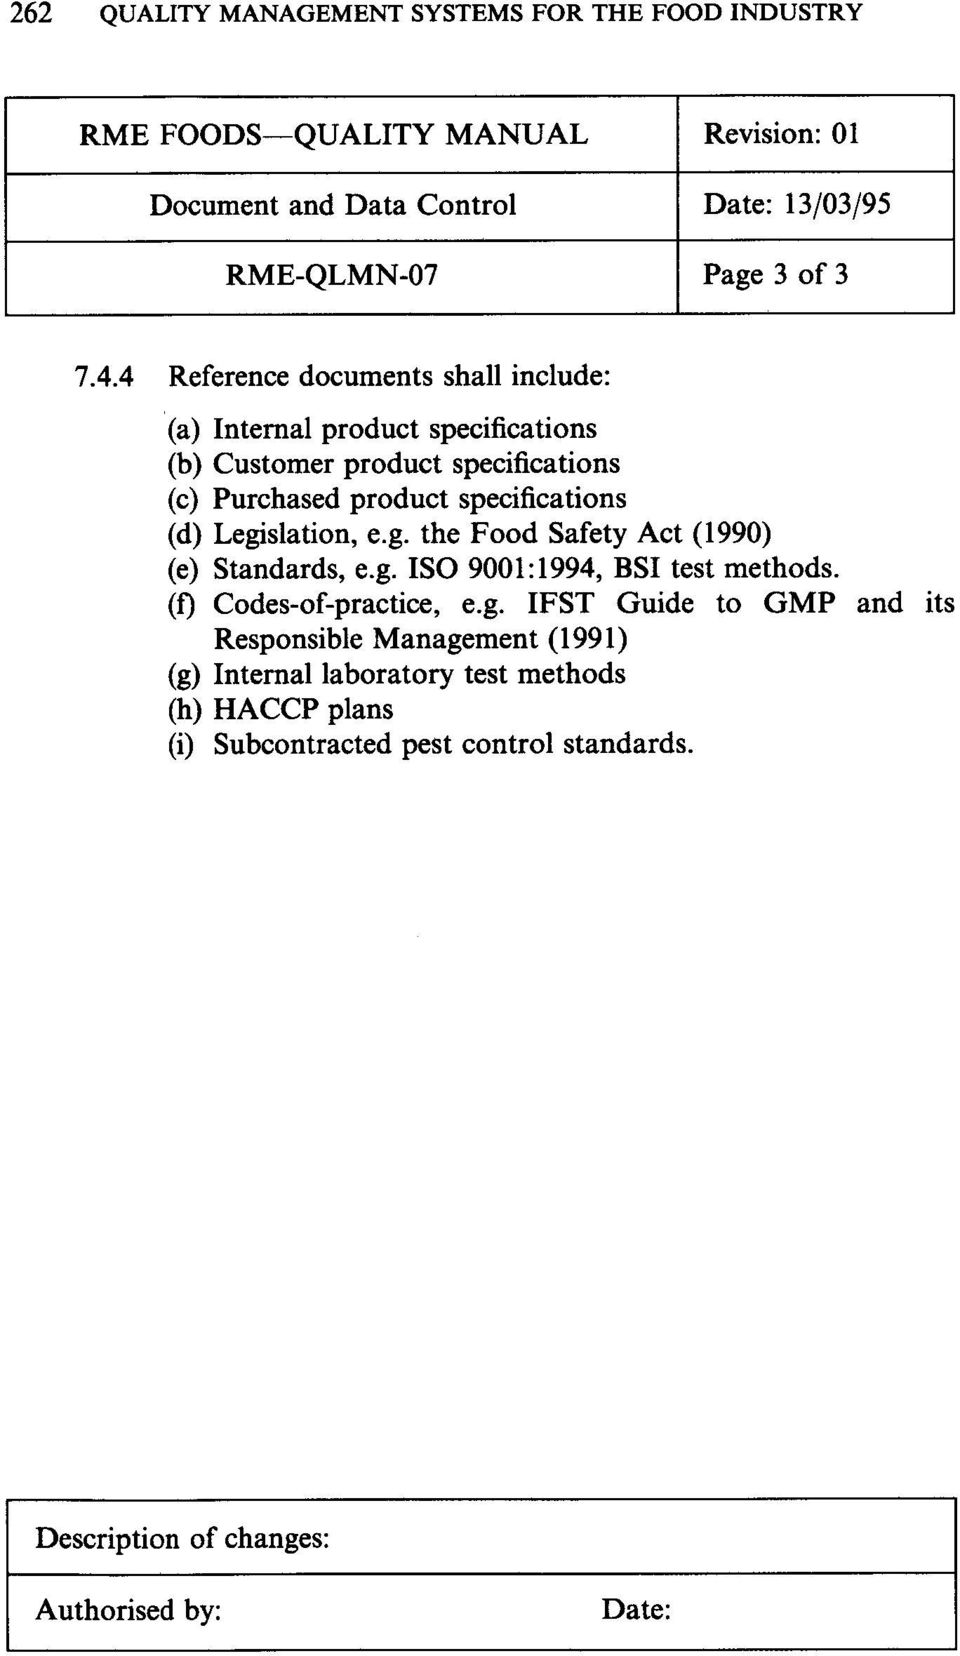 Legislation, e.g. the Food Safety Act (1990) (e) Standards, e.g. ISO 9001:1994, BSI test methods. (t) Codes-of-practice, e.g. IFST Guide to GMP and its Responsible Management (1991) (g) Internal laboratory test methods (h) HACCP plans (i) Subcontracted pest control standards.